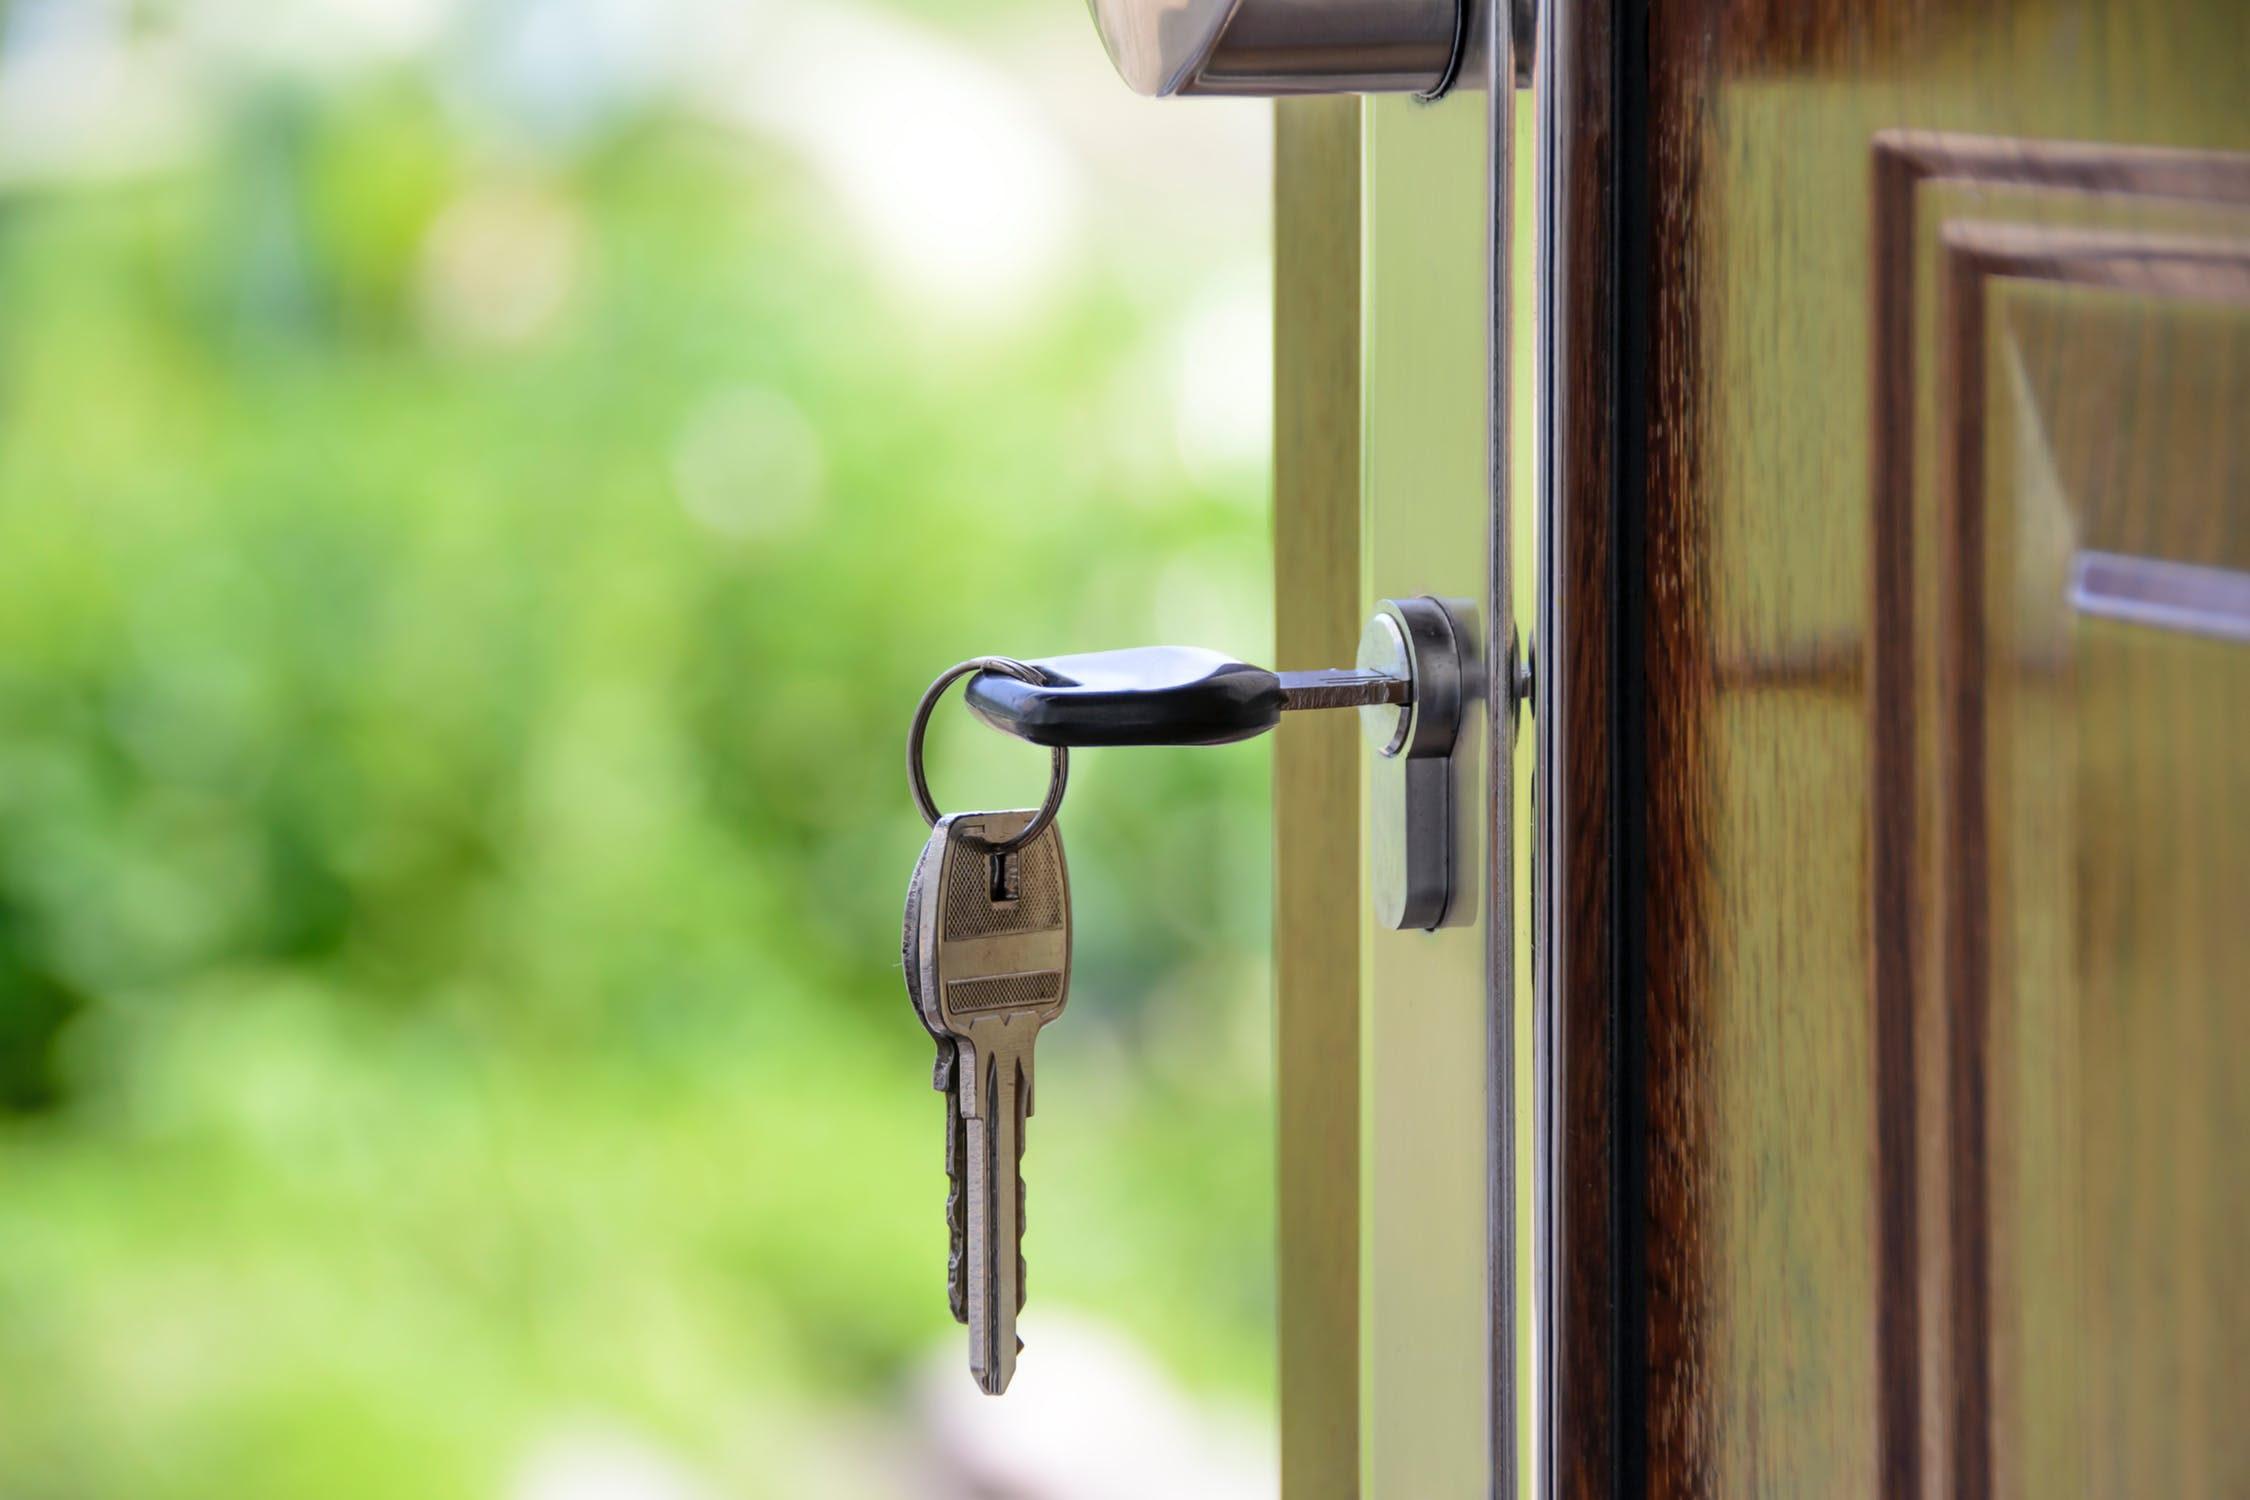 Image of keys in the keyhole of a door